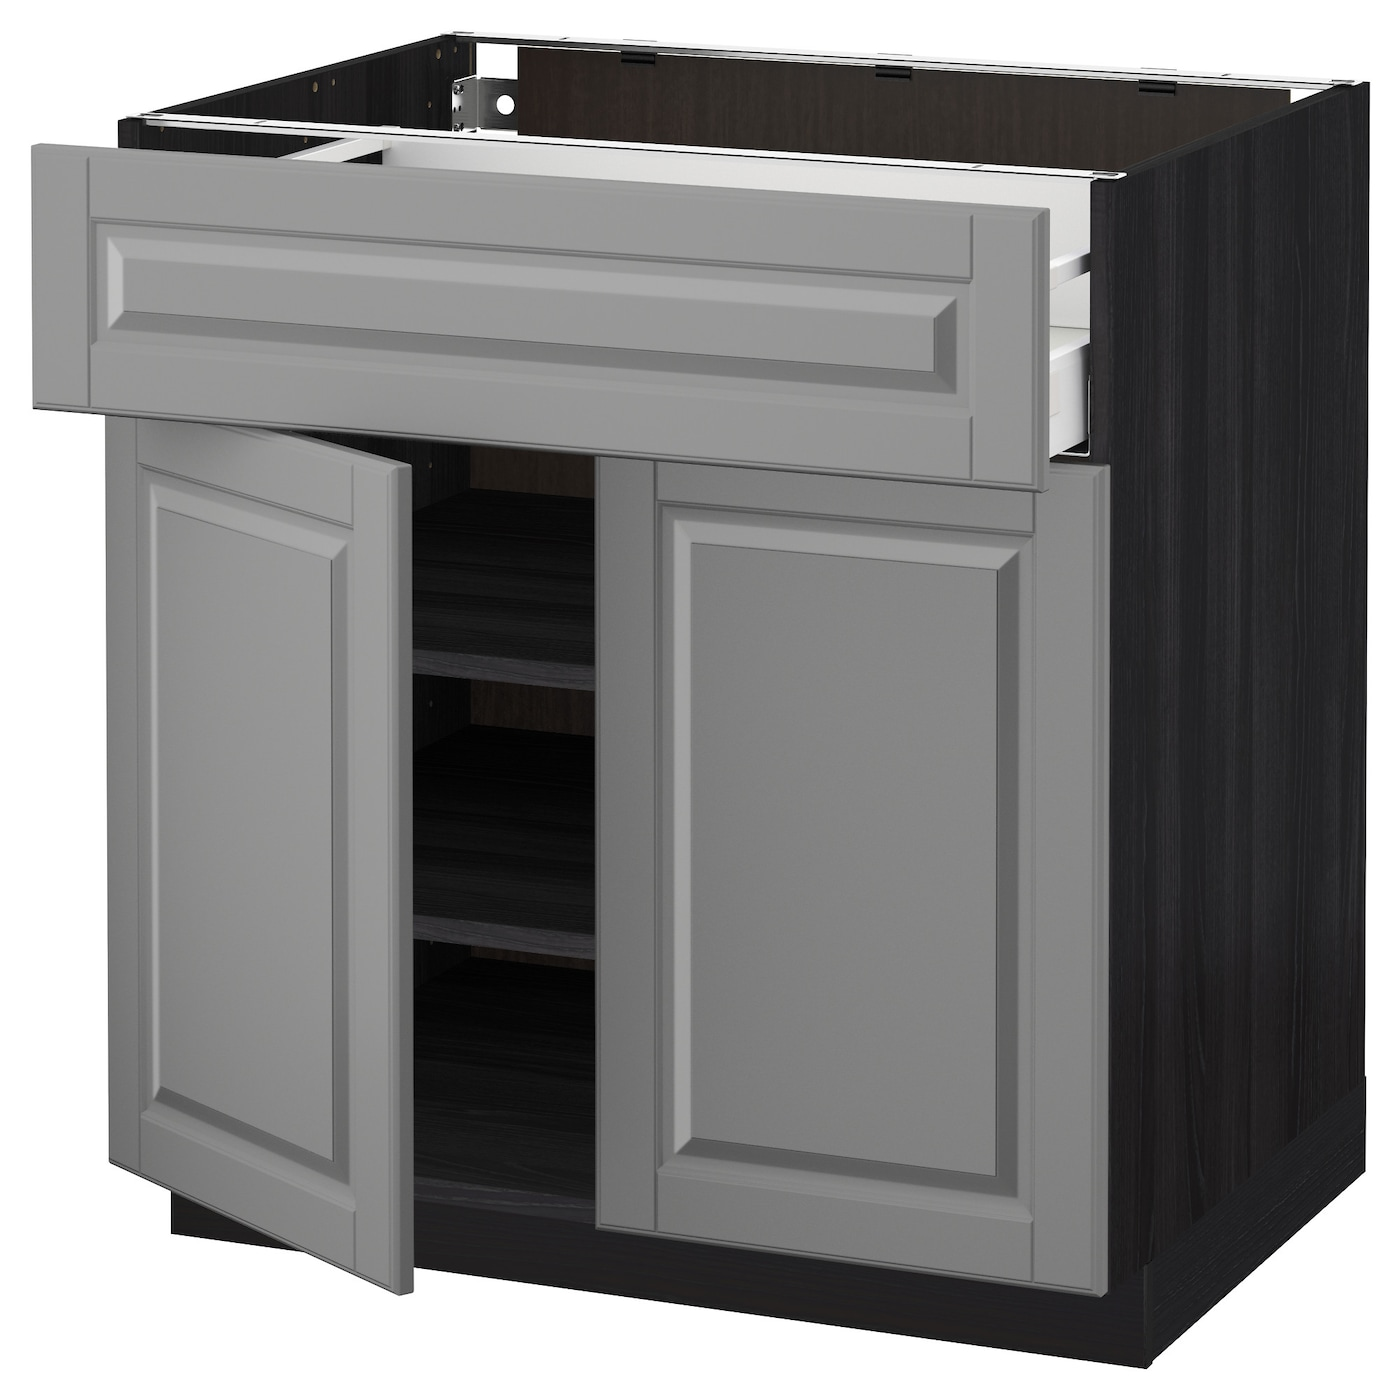 Metod Maximera Base Cabinet With Drawer 2 Doors Black Bodbyn Grey 80x60 Cm Ikea